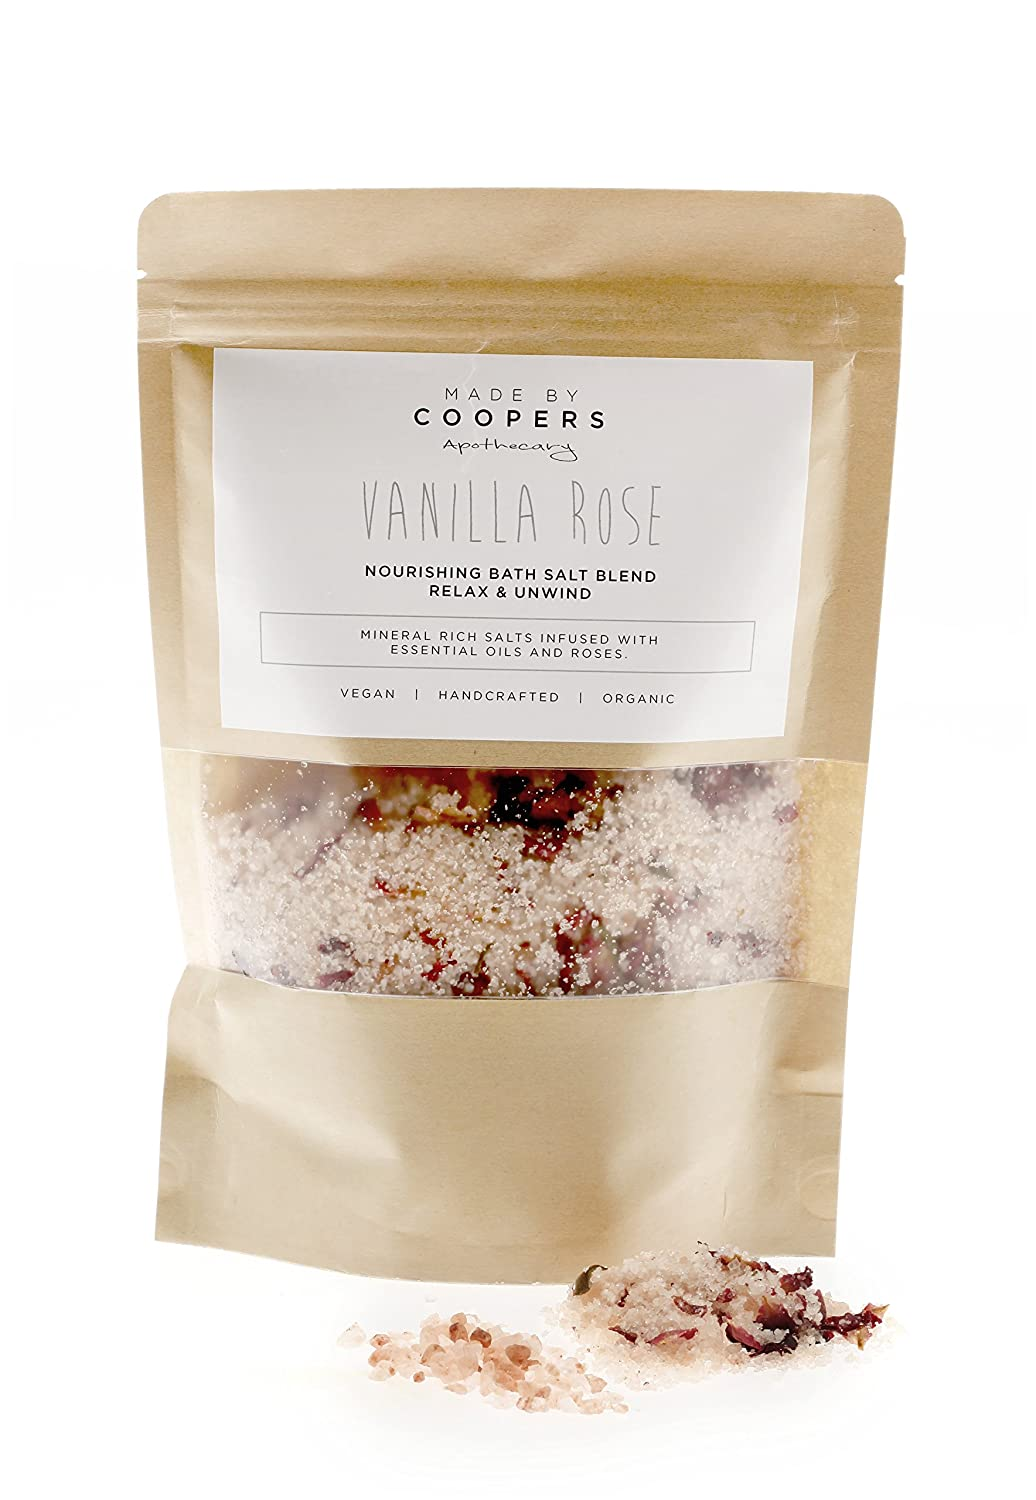 Vanilla Rose Nourishing Bath Salt Blend with Essential Oils and Coconut Oil by Made By Coopers - 400g Bag.